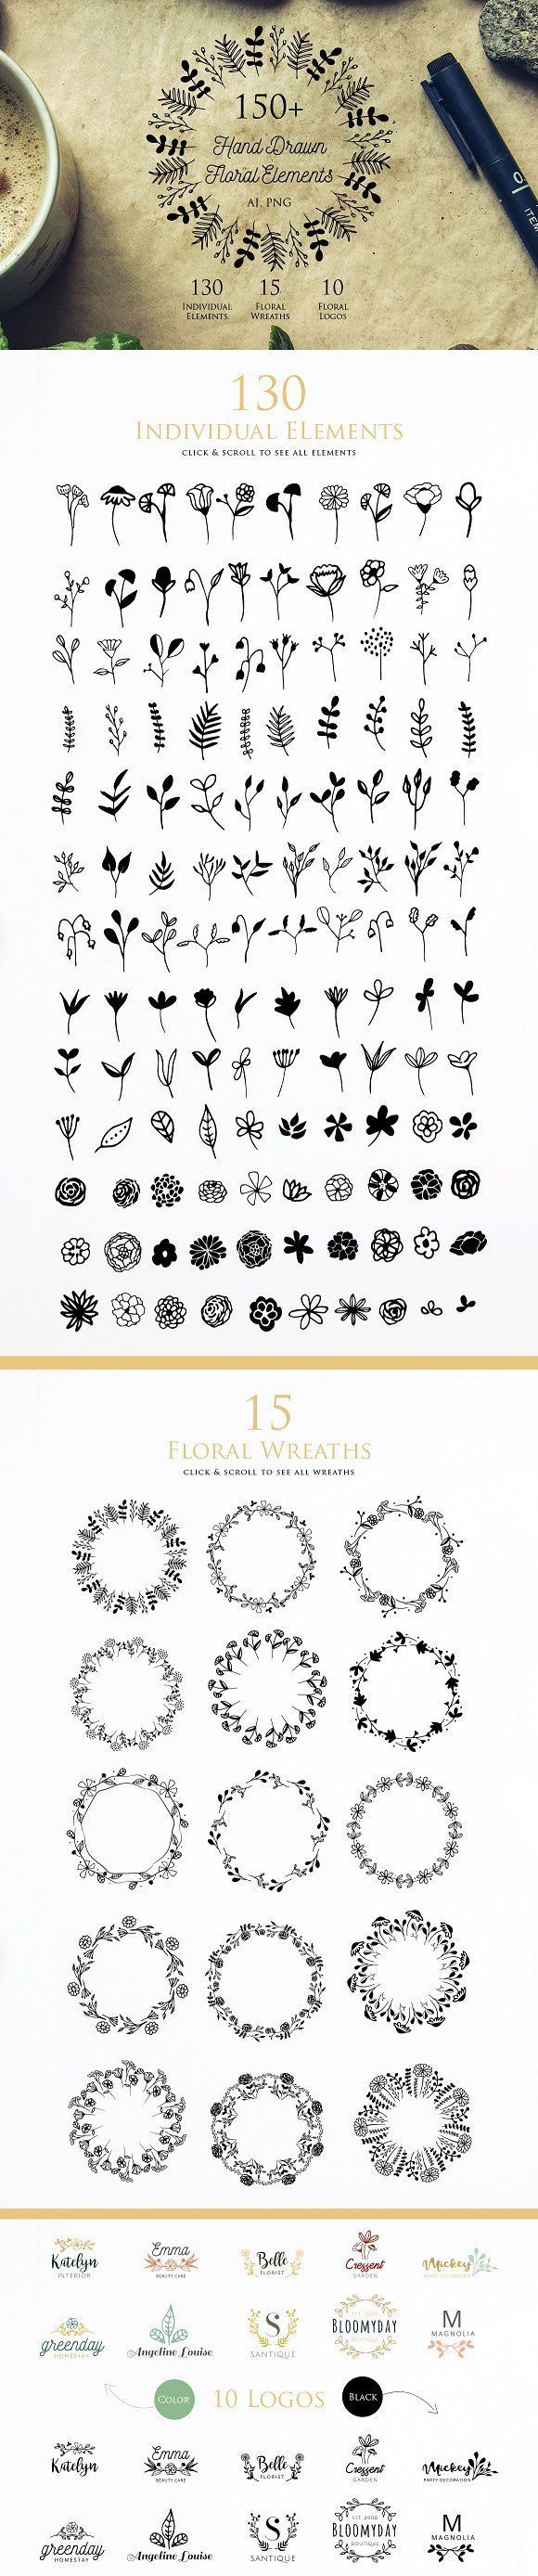 Photo of Hand drawn floral elements by iamwulano on Creative Market